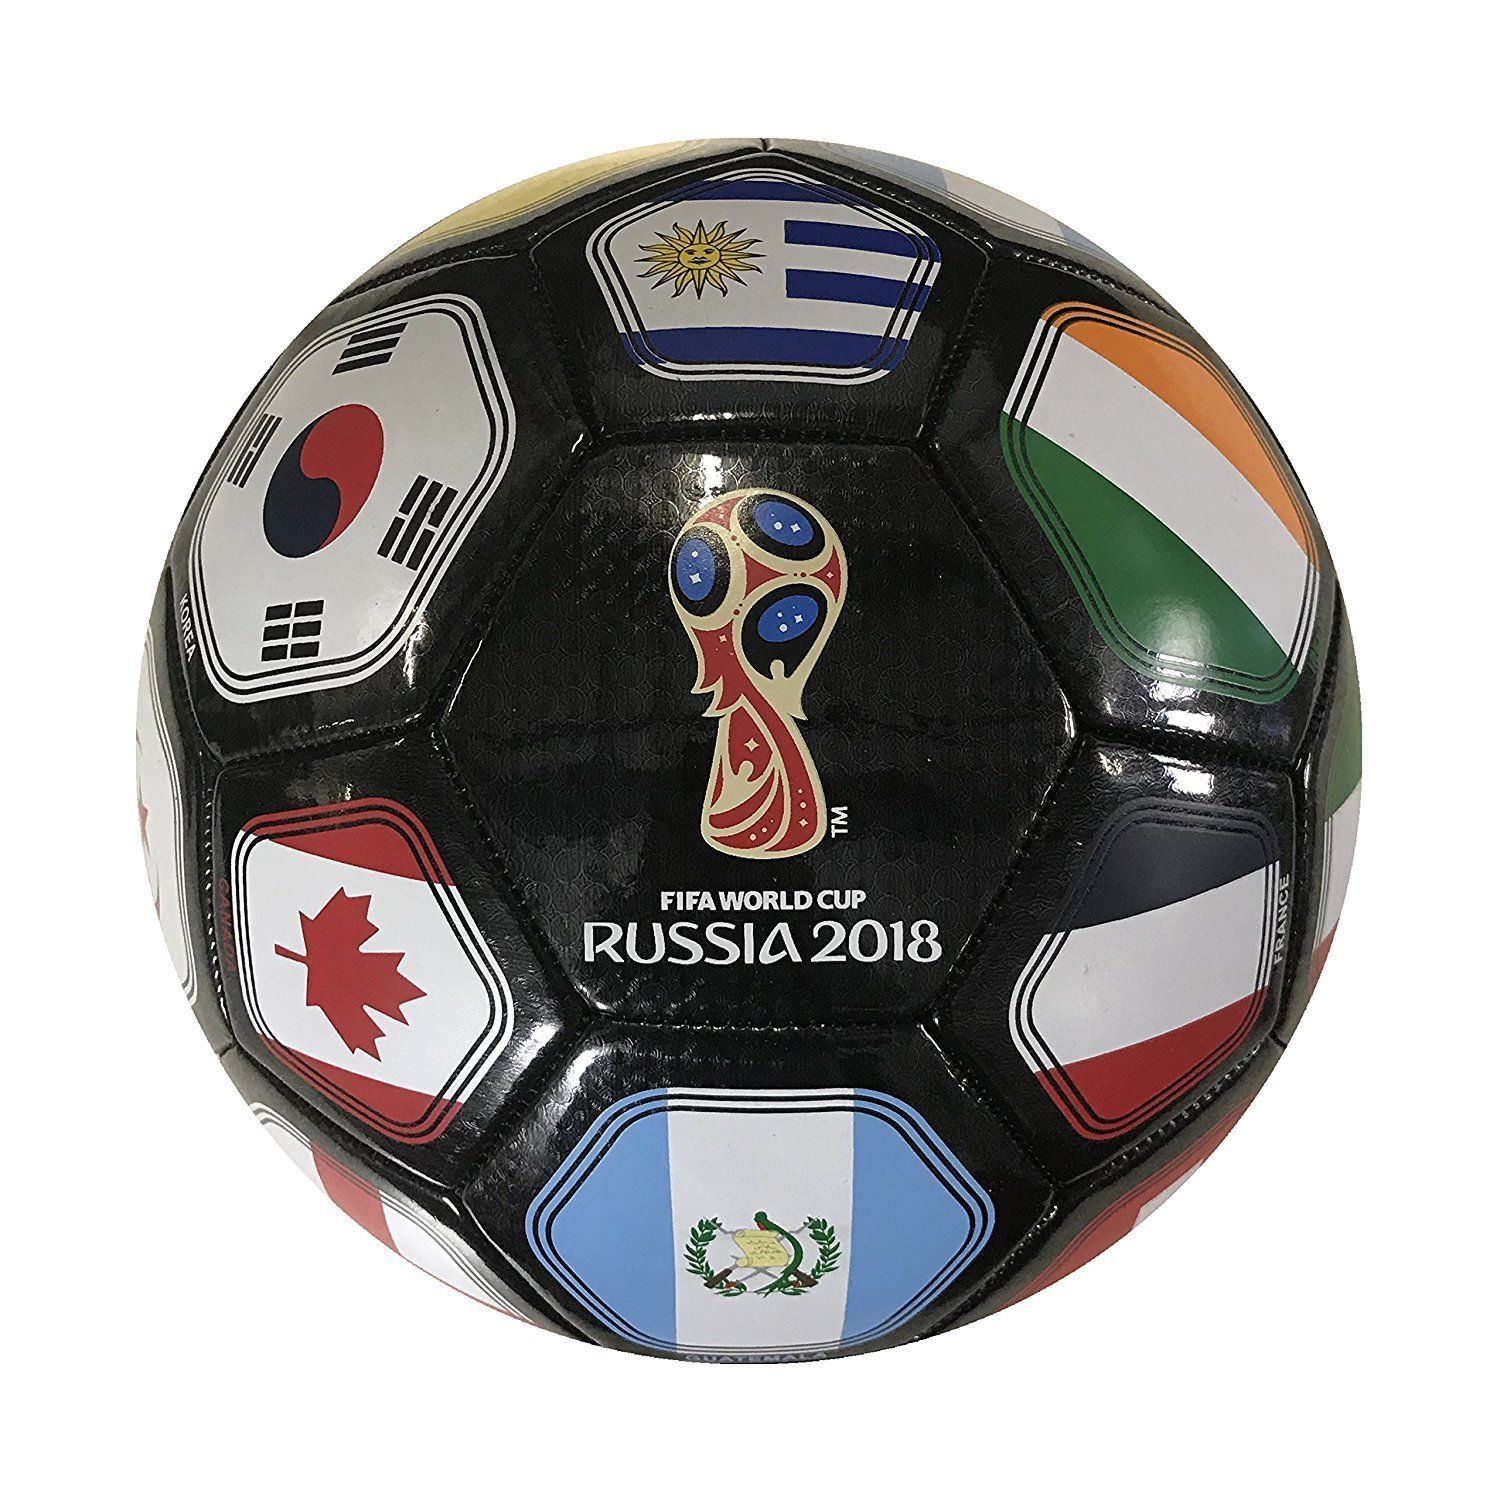 Russia World Cup 2018 Fifa Souvenir Soccer Ball Black Size 5 With A Ball Pump Discount Price 21 99 Buy It Now Free Shipping Soccer Soccer Ball Fifa